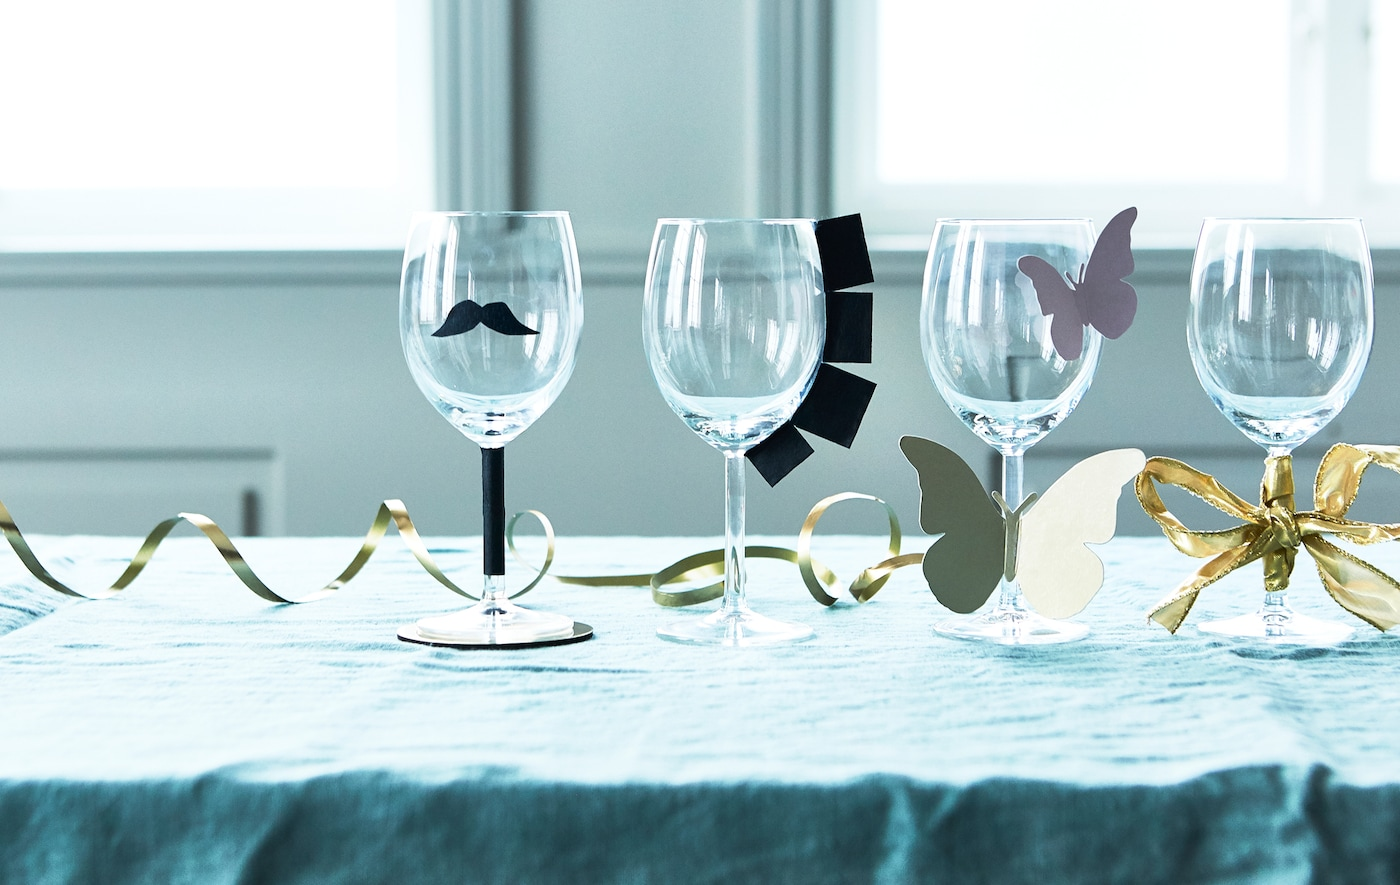 Let your guests flex their creative muscle with a fun wine glass craft.